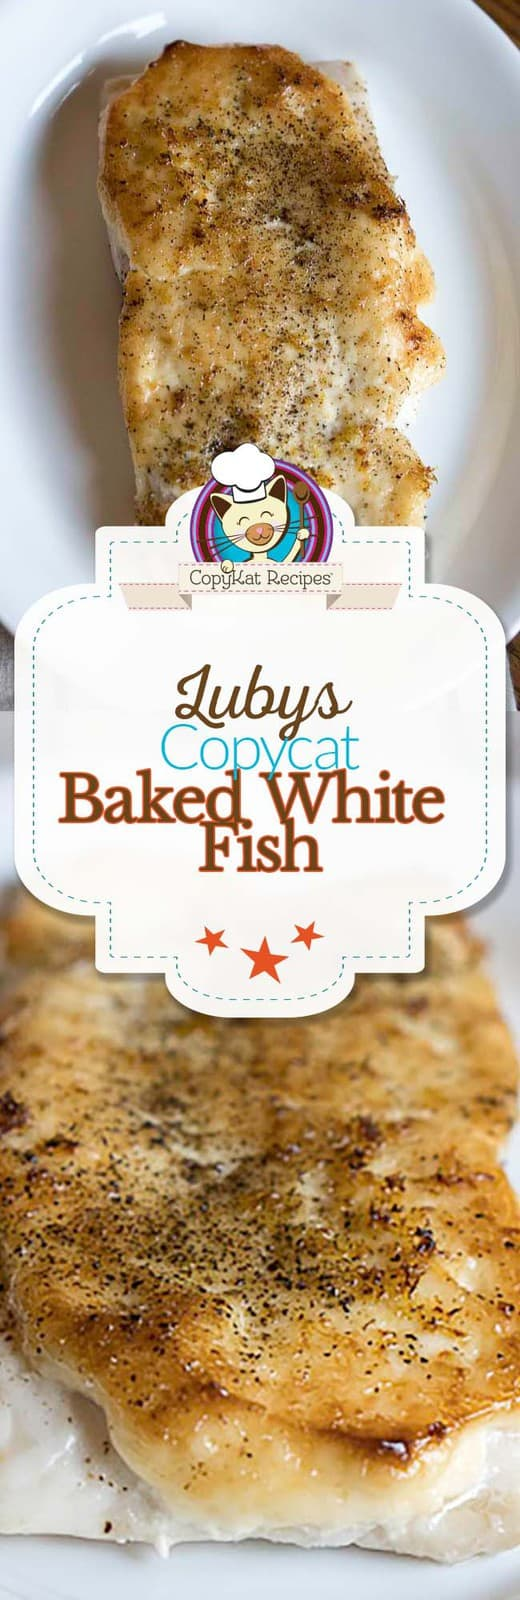 You can recreate Luby's Baked White Fish at home with this easy copycat recipe.